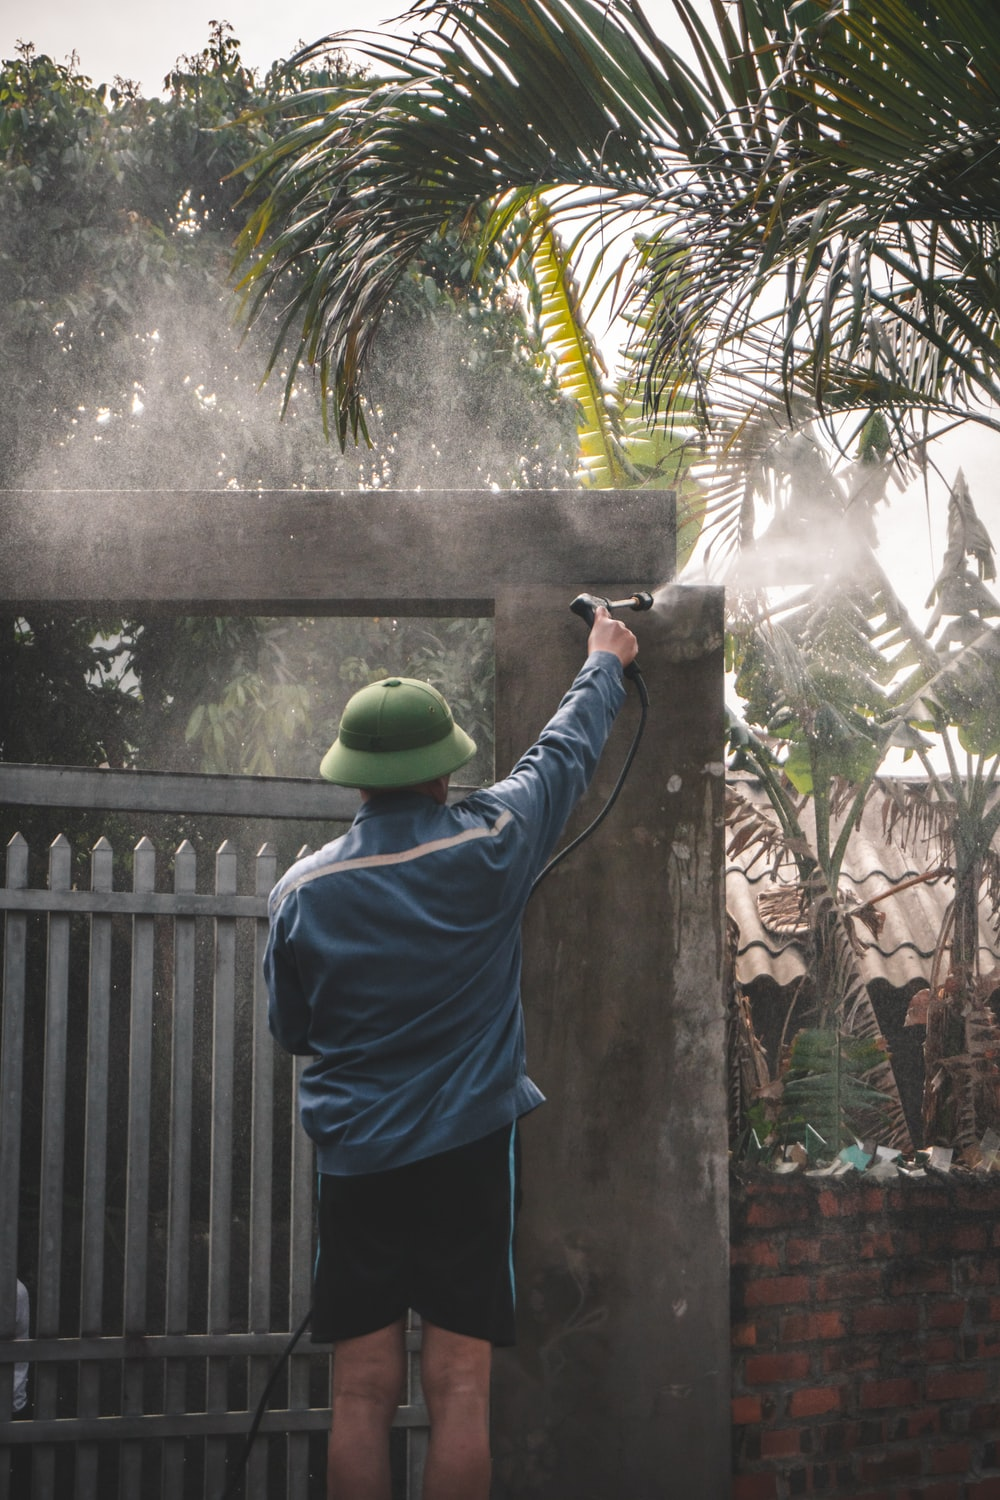 man in blue shirt and blue pants standing near green palm tree during daytime